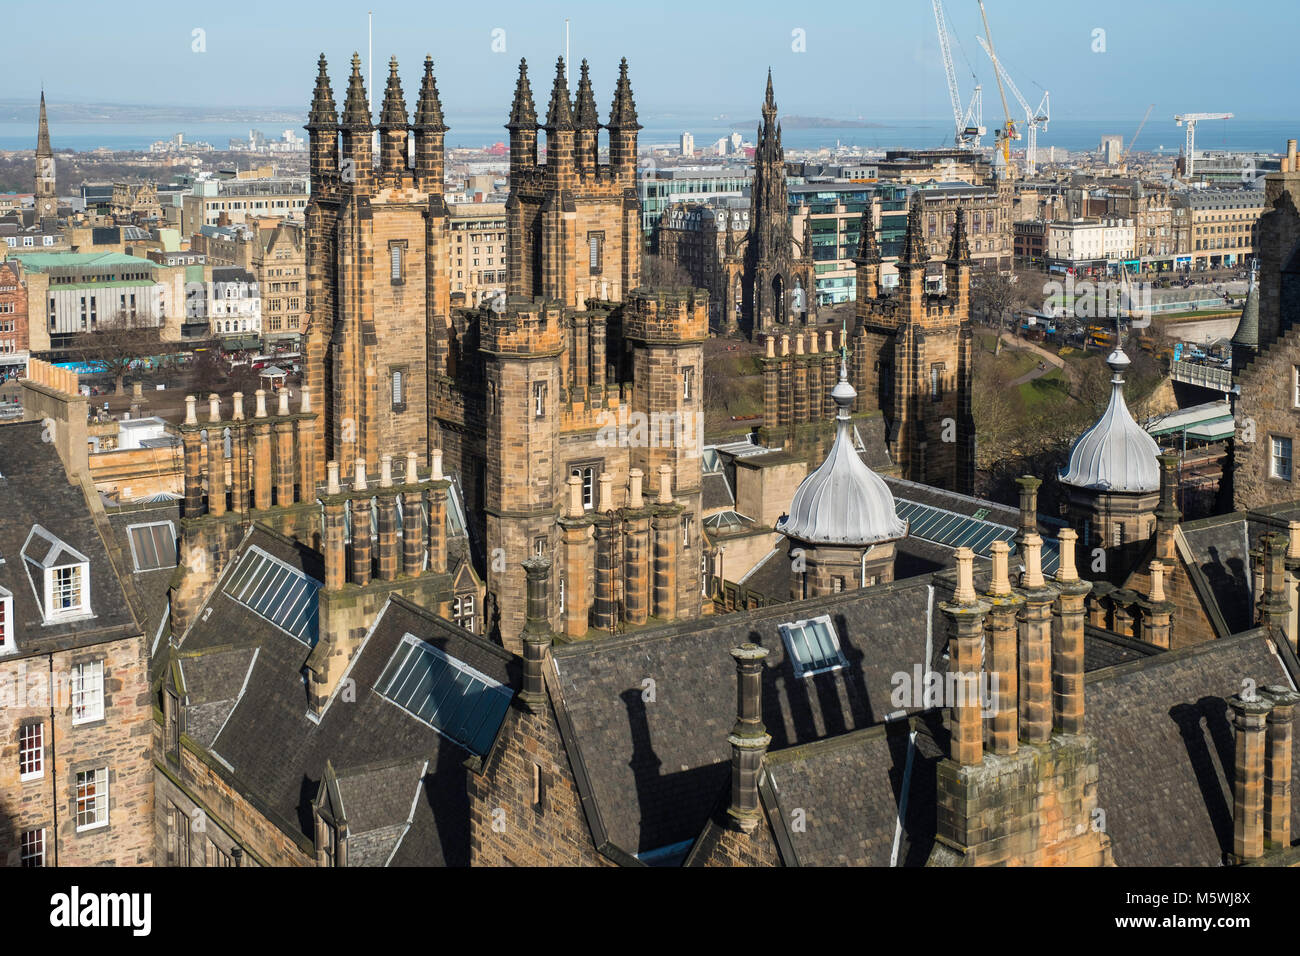 View over spires and towers of New College , part of Edinburgh University , on The Mound in  Edinburgh, Scotland, - Stock Image